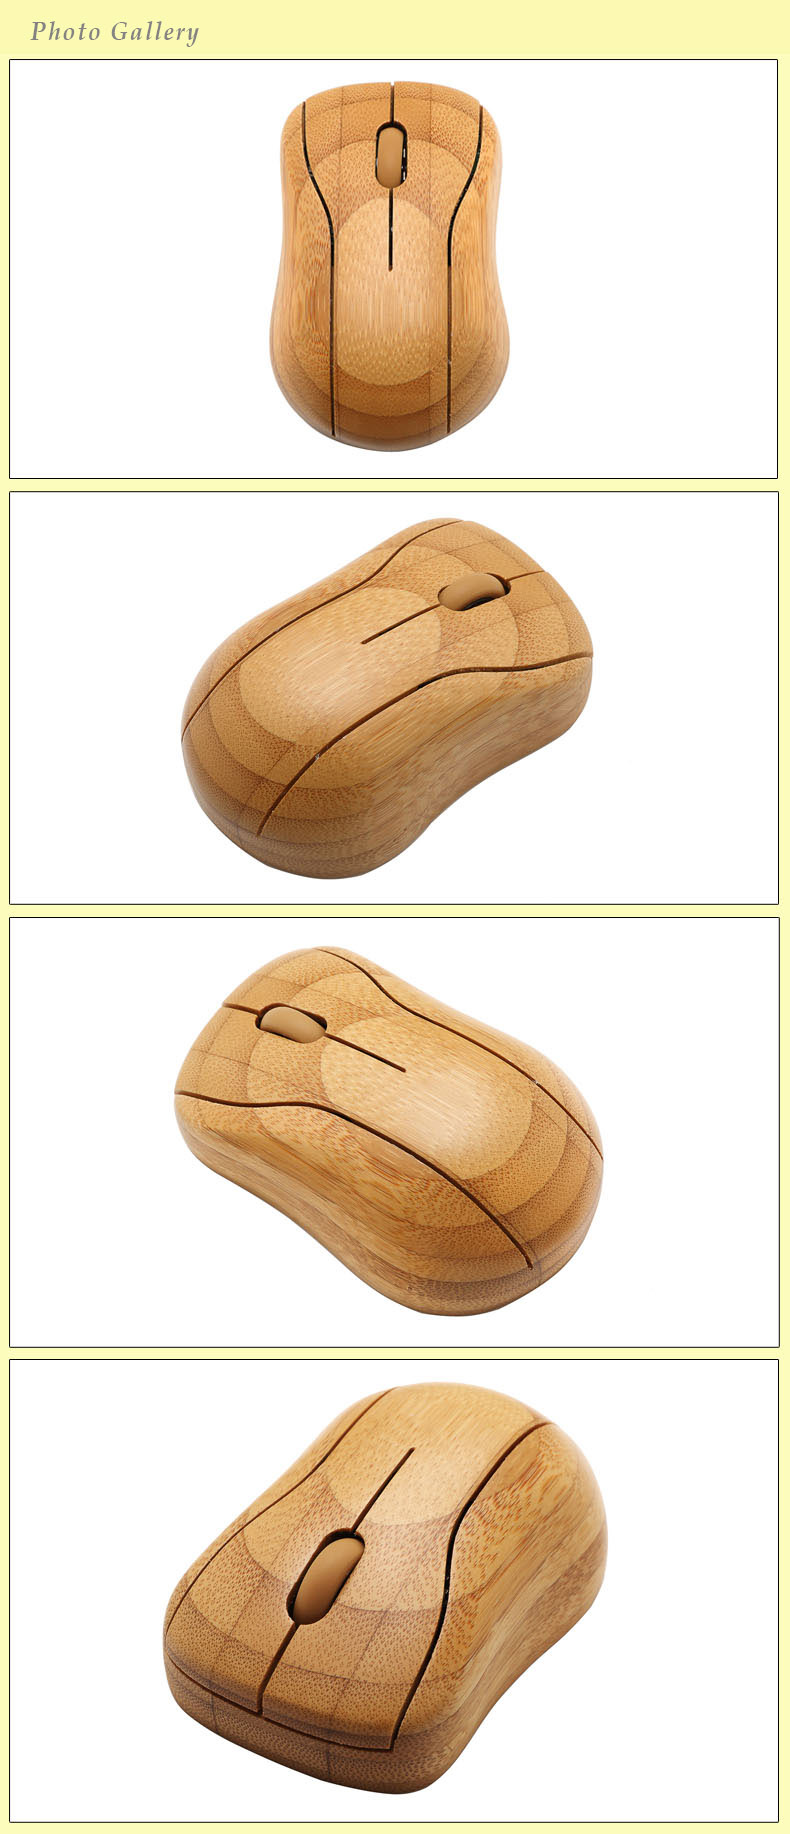 Natural Bamboo Nano Wireless USB 2.4GHz Mouse with ancient wisdom words carving